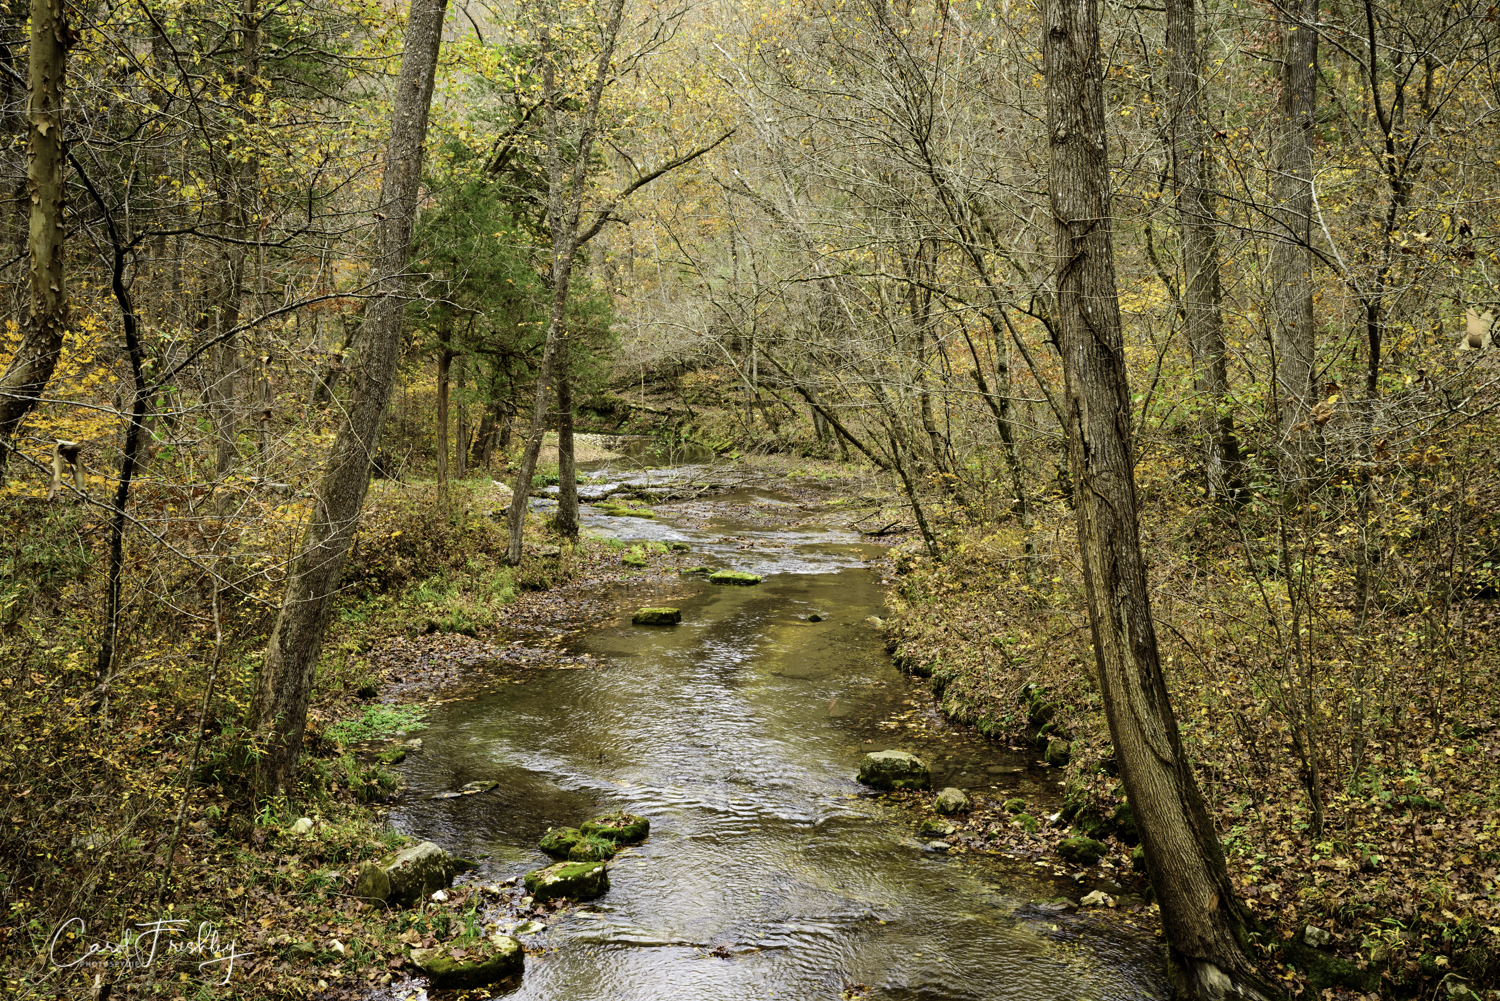 Mill Creek was named after a grist mill located just below the dam that is pictured above.